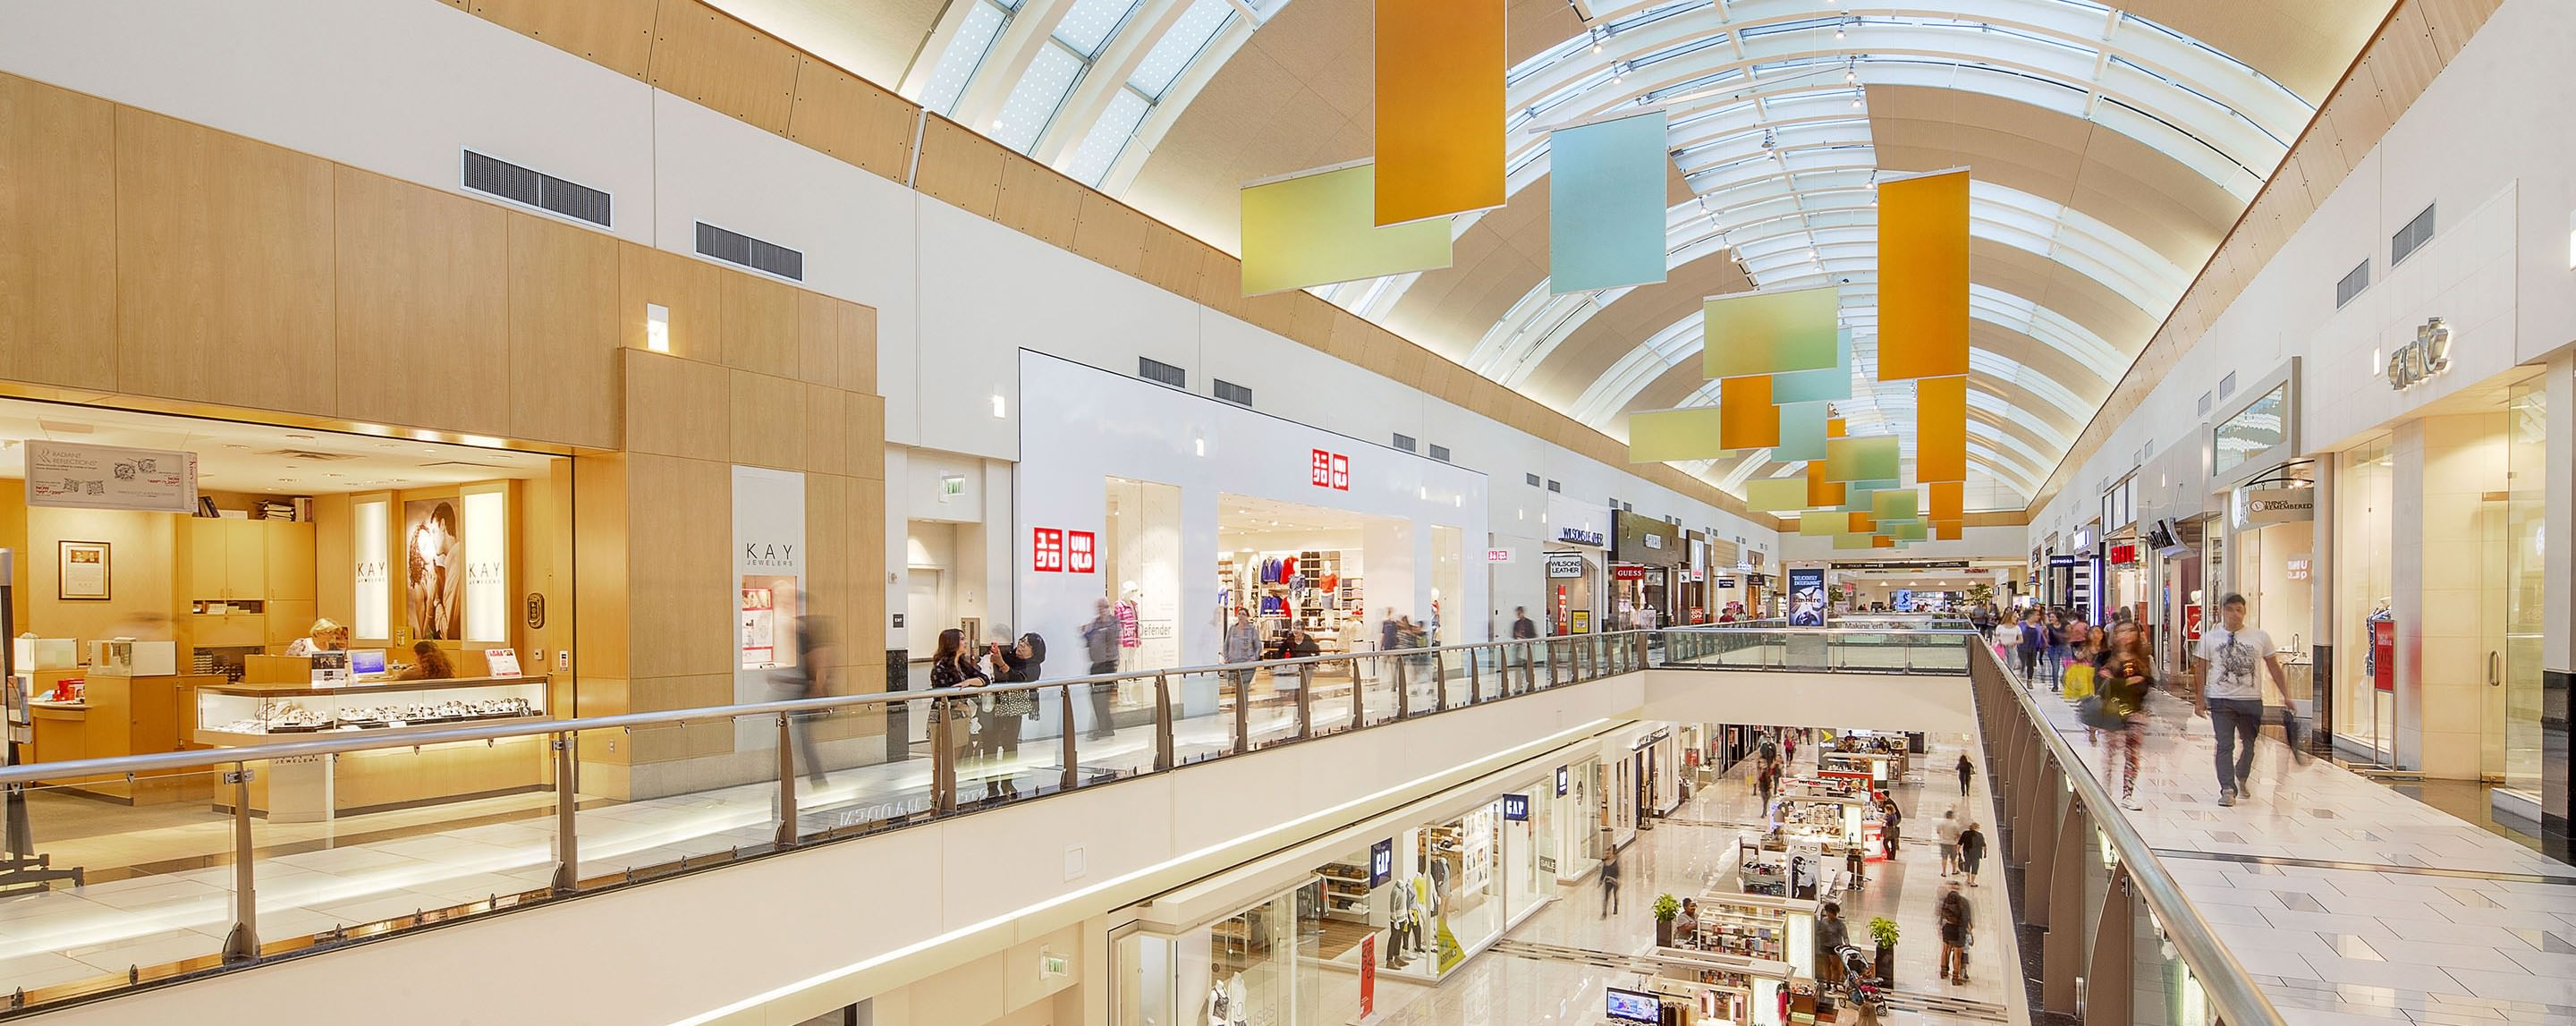 Northridge Fashion Center in Northridge is the ultimate destination for shopping. Use our mall directory and map to find your favorite stores and brands.